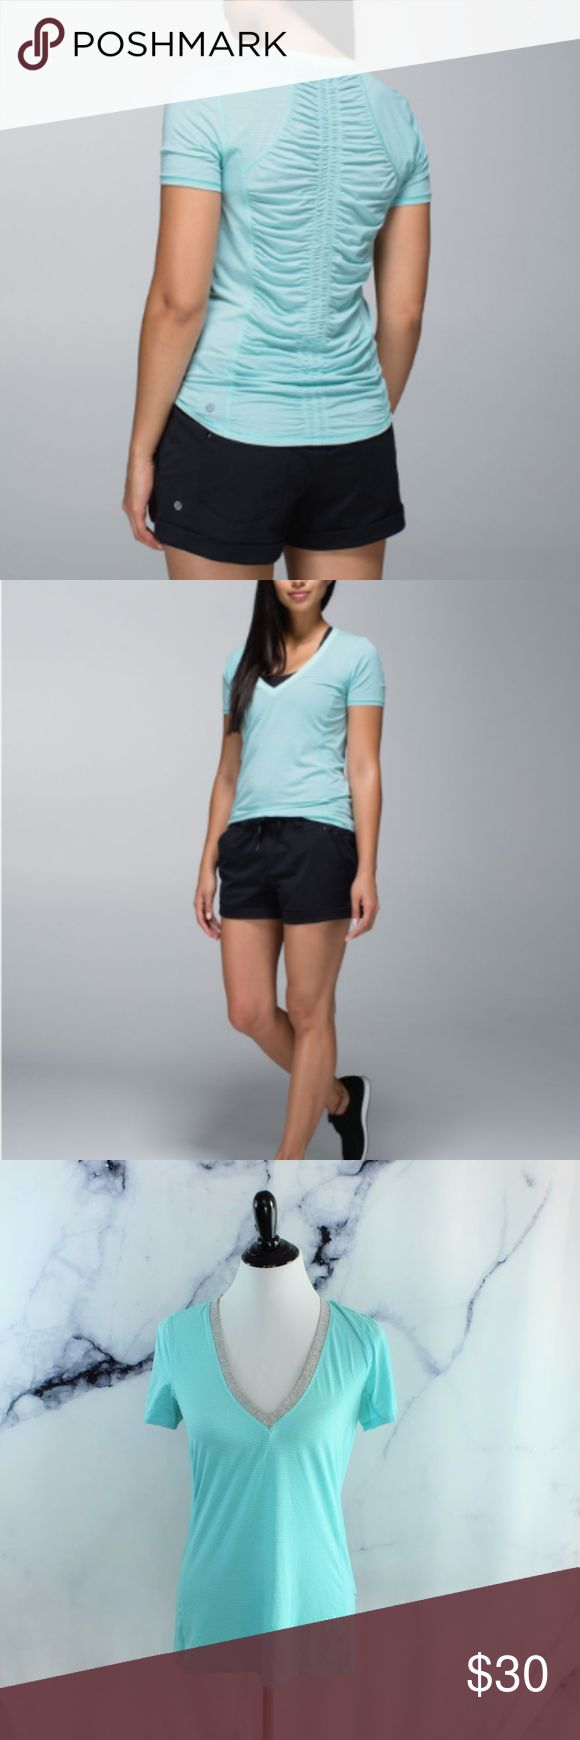 Lululemon Runner Up Short Sleeve Aquamarine 8 CONDITION: used STRETCH: yes, can easily and comfortably fit a 10 FLAWS: slight yellowing in the underarm on the INNER shirt. Not noticeable when worn. Feel free to send me an offer! Or just bundle your likes for me and I'[ll send YOU an offer with an exclusive discount! lululemon athletica Tops Tees - Short Sleeve